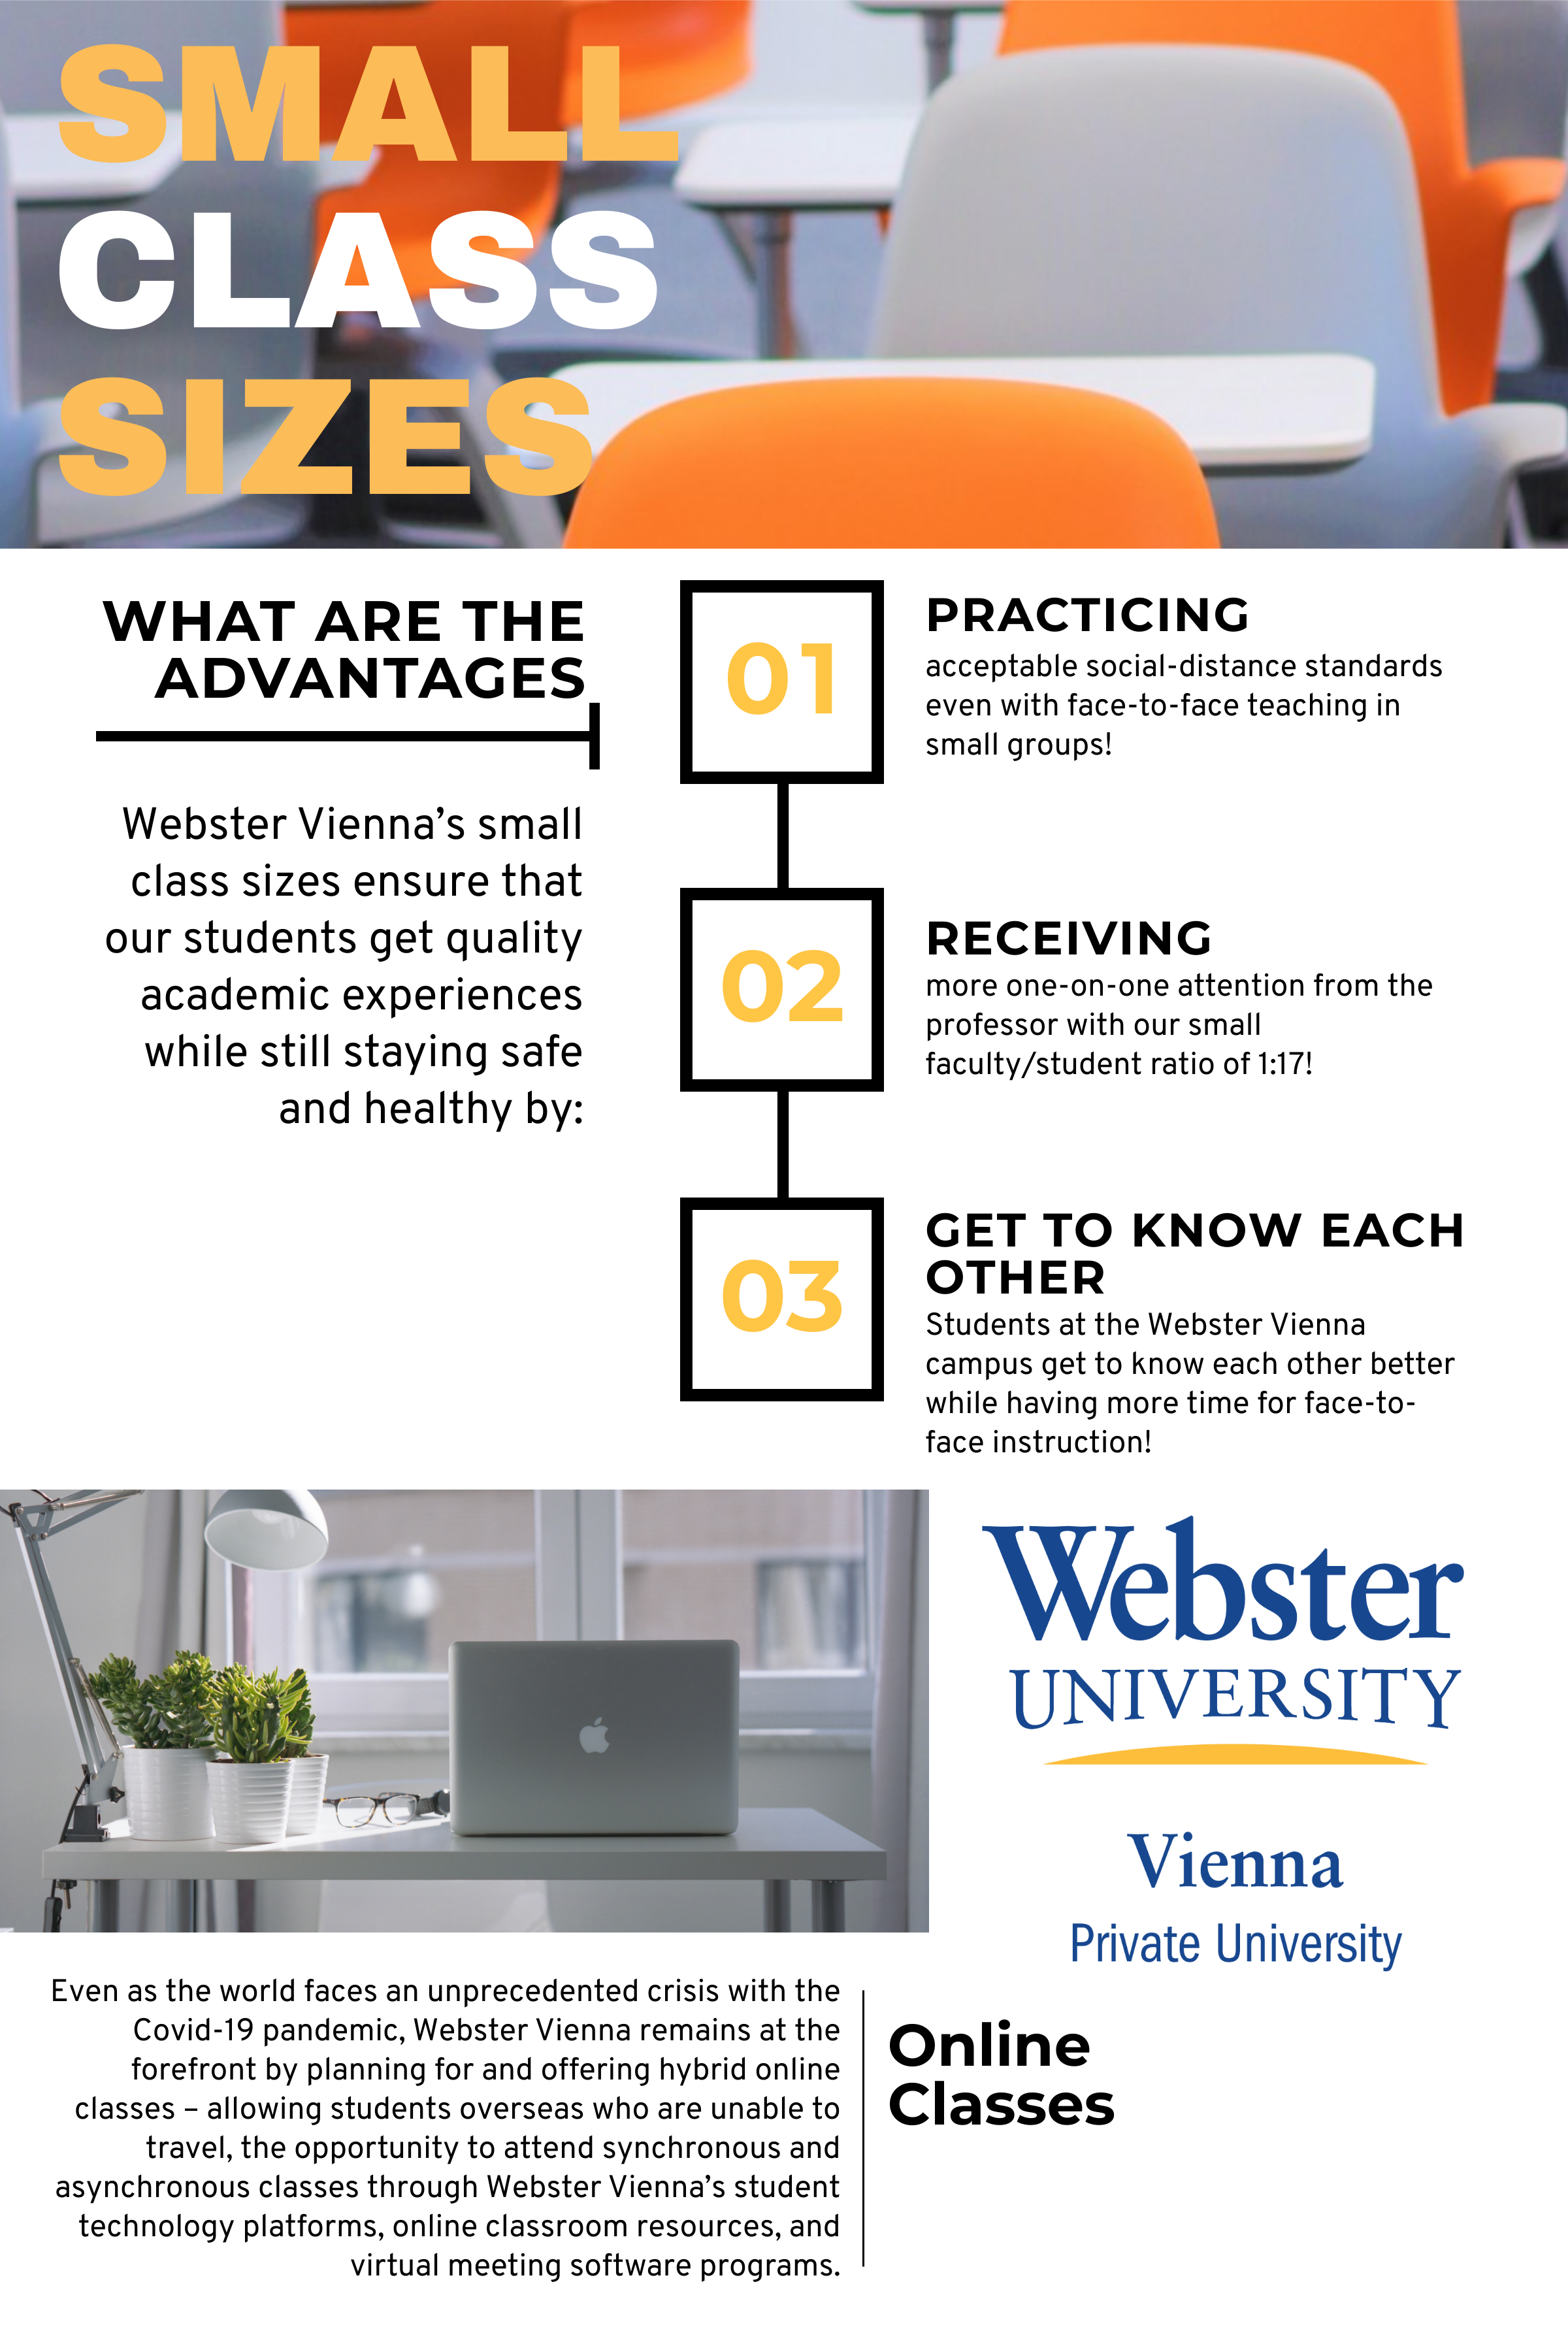 What are the Advantages of Webster Vienna's Small Class Sizes?